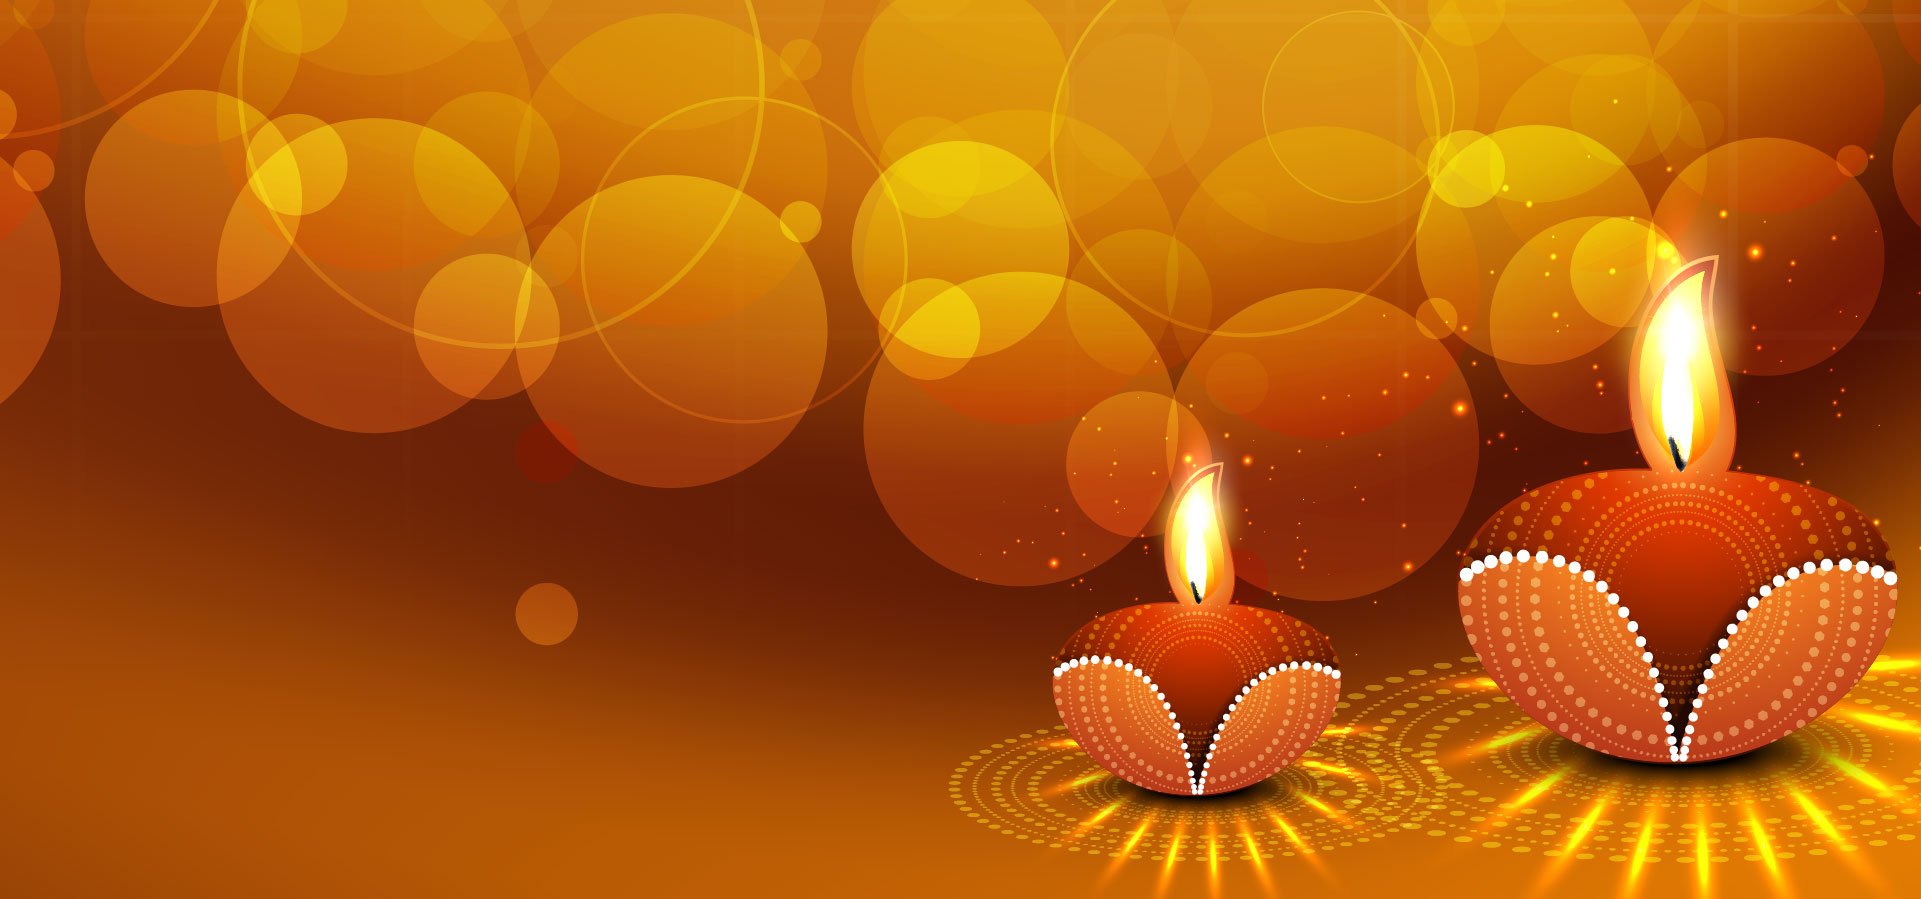 diwali background photos  diwali background vectors and psd files for free download